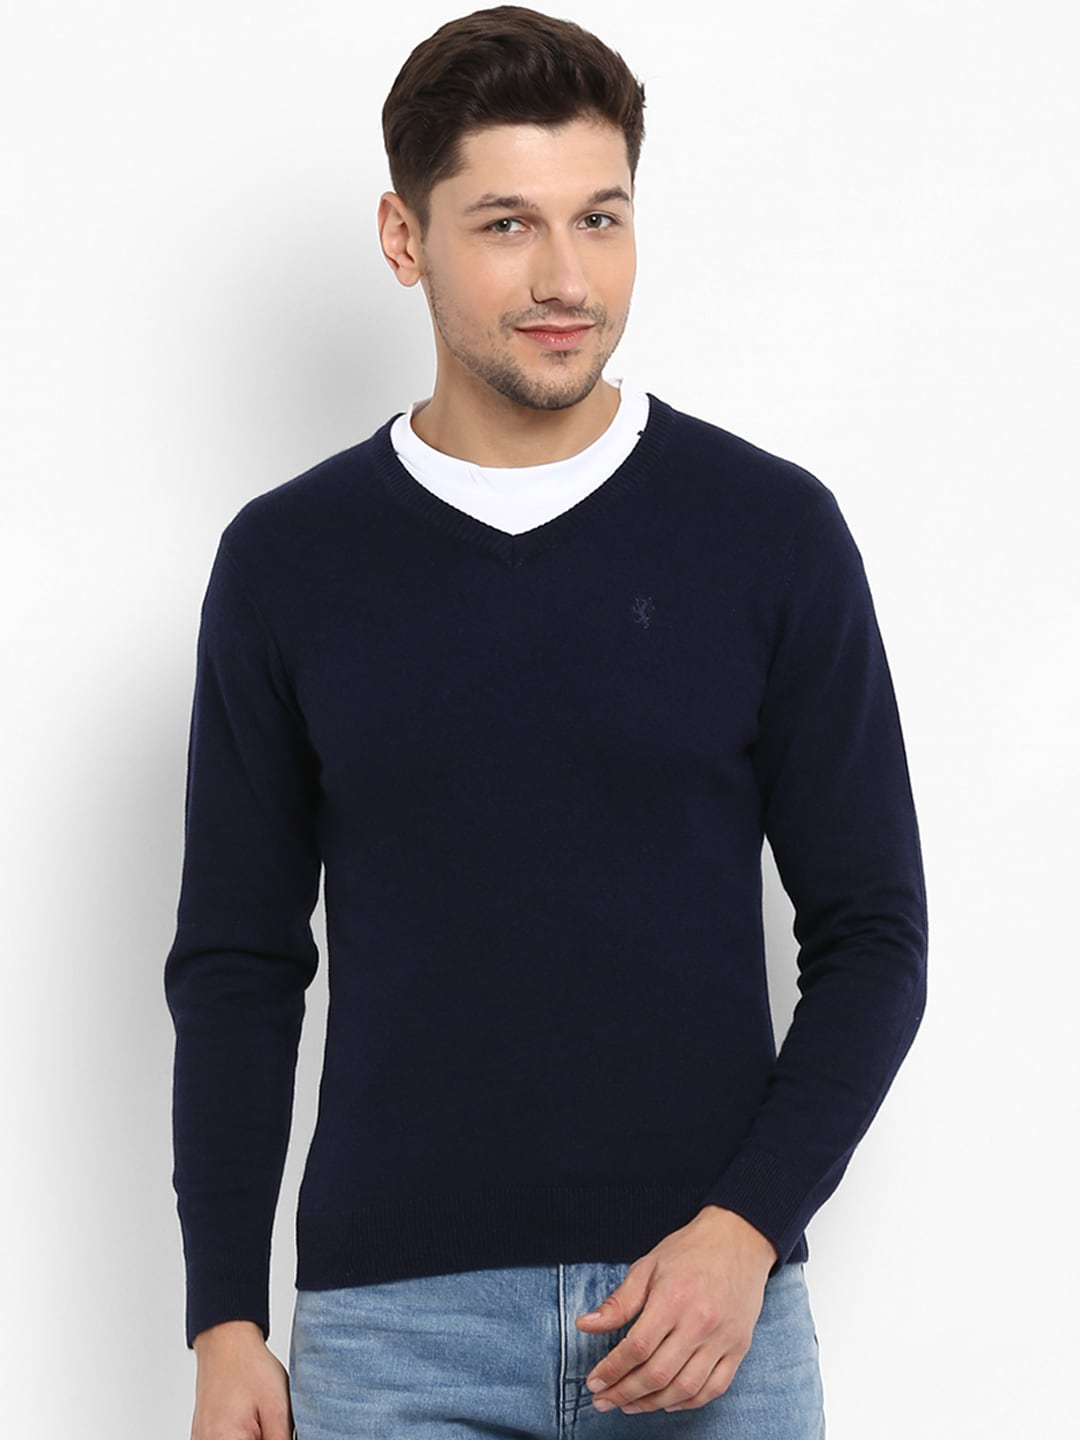 Sweaters - Buy Sweater for Men ae5157bb2